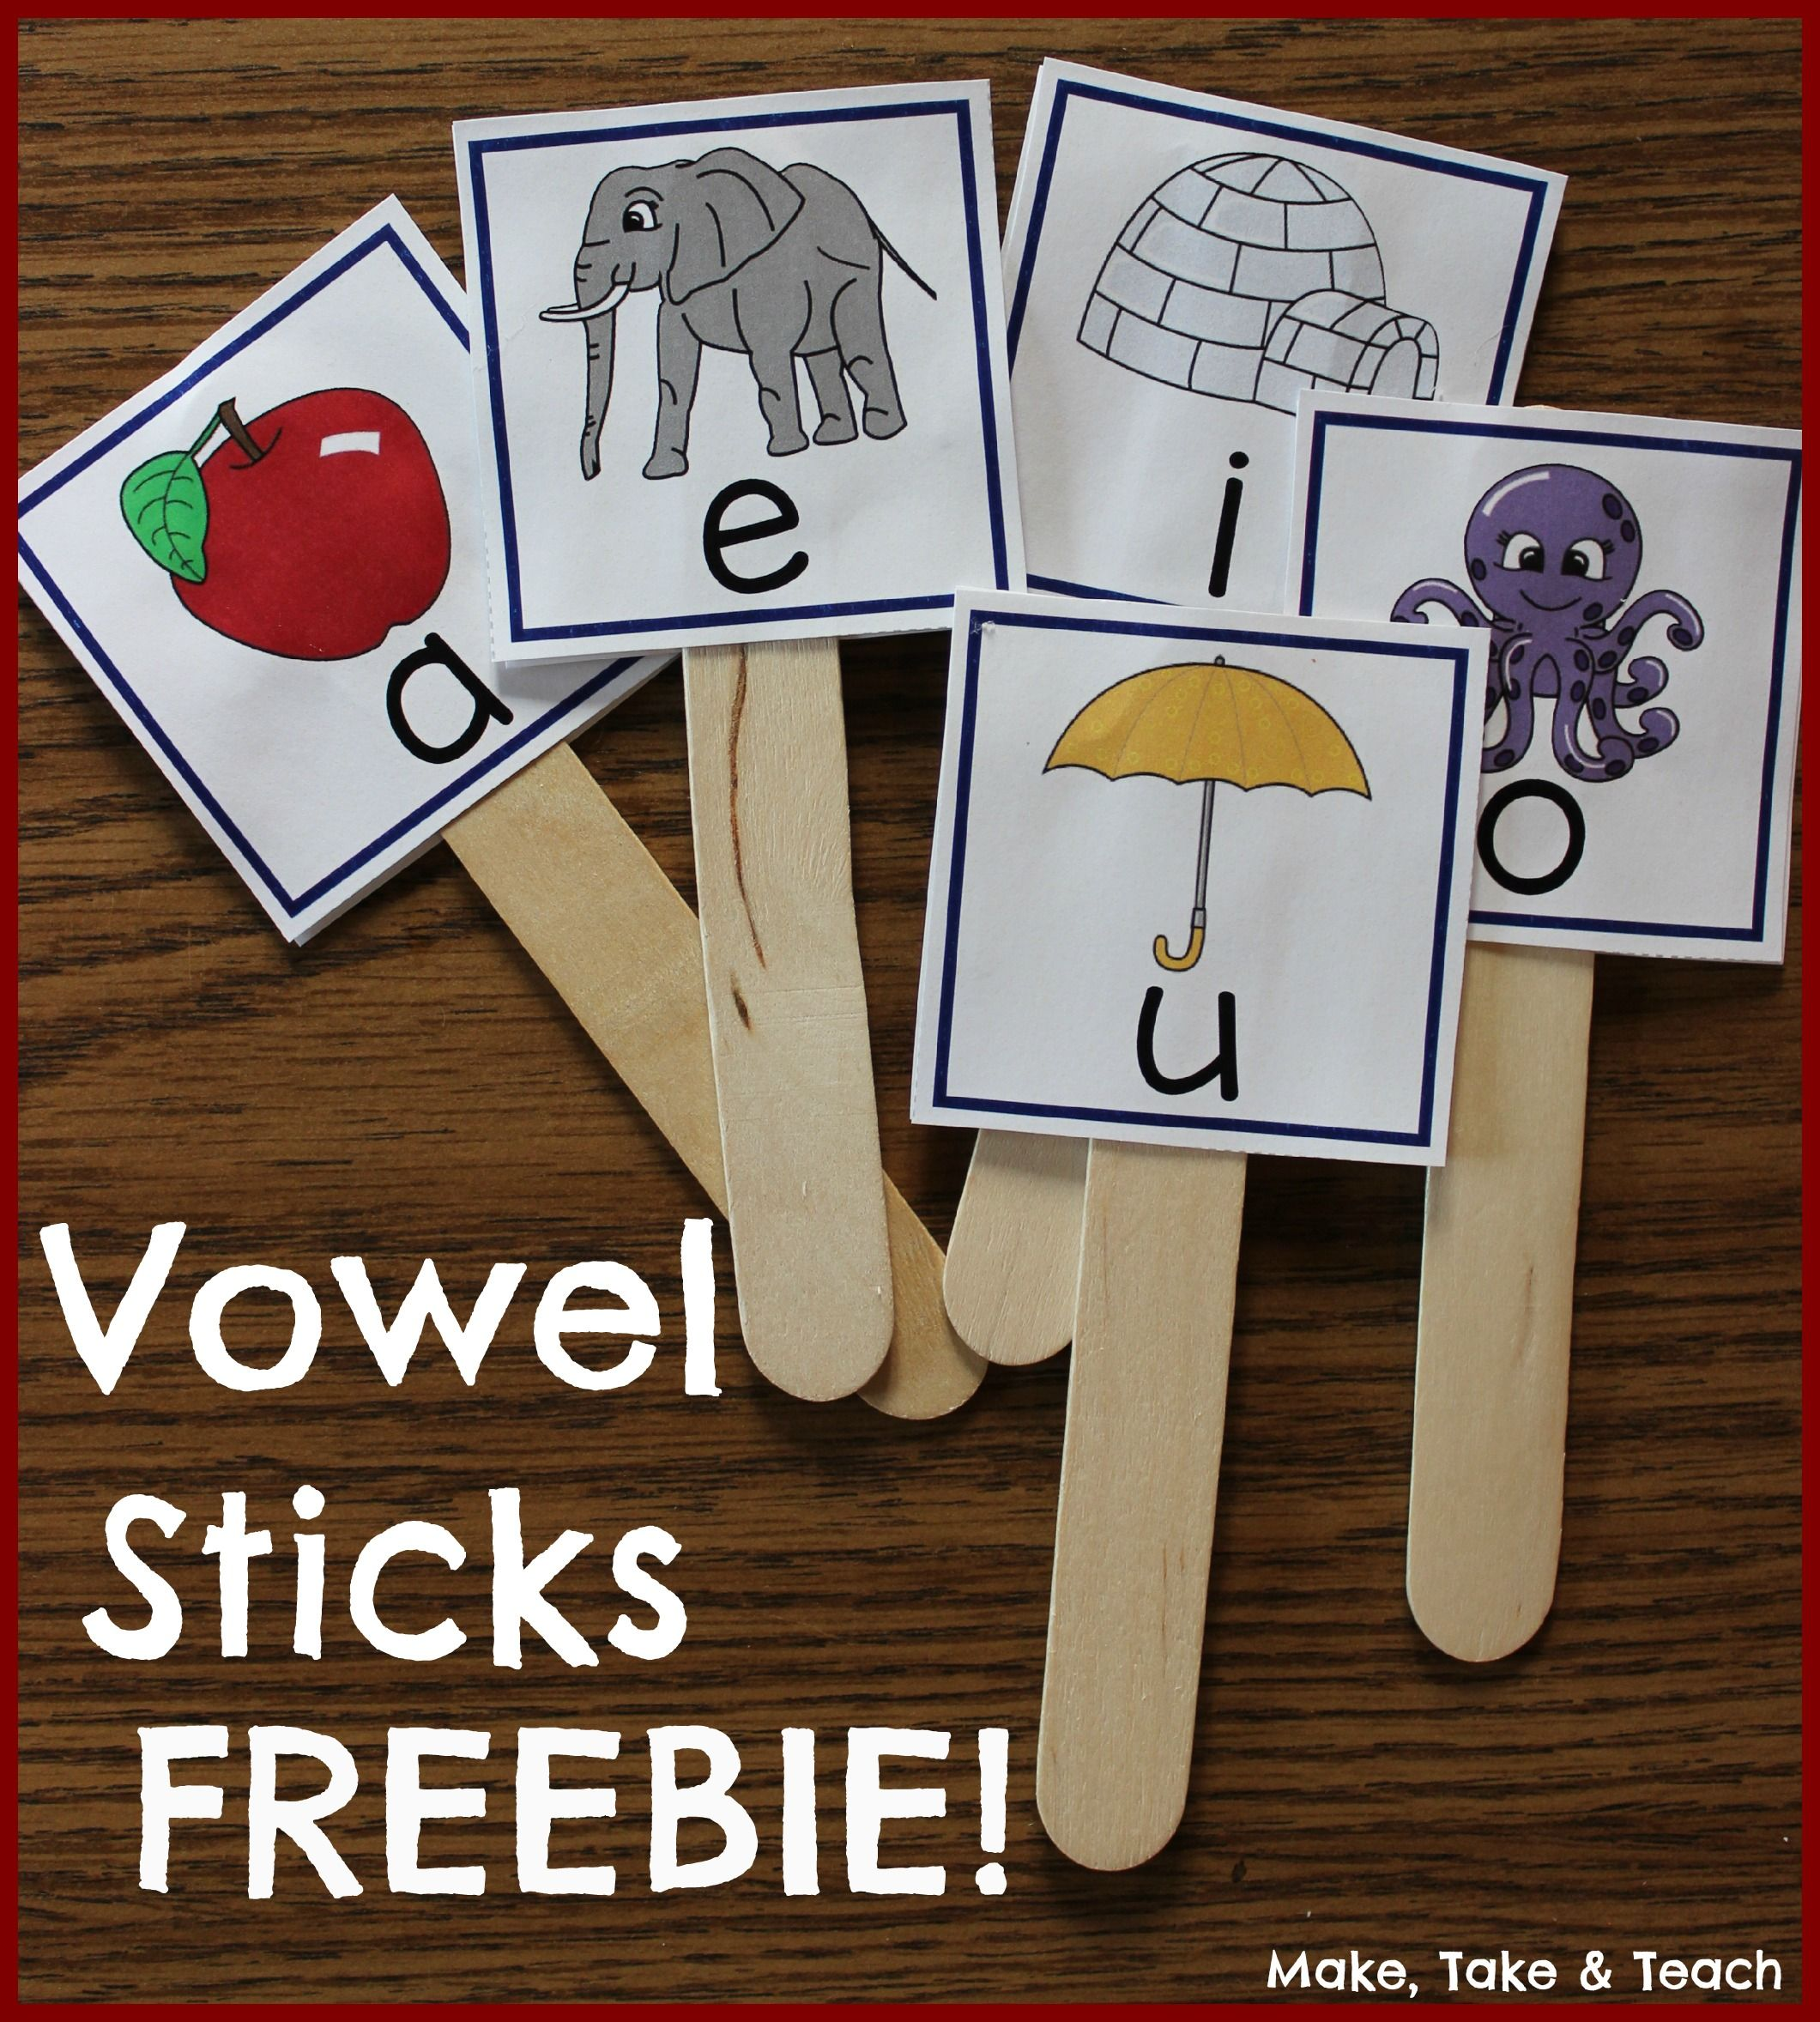 Vowel Sticks Freebie